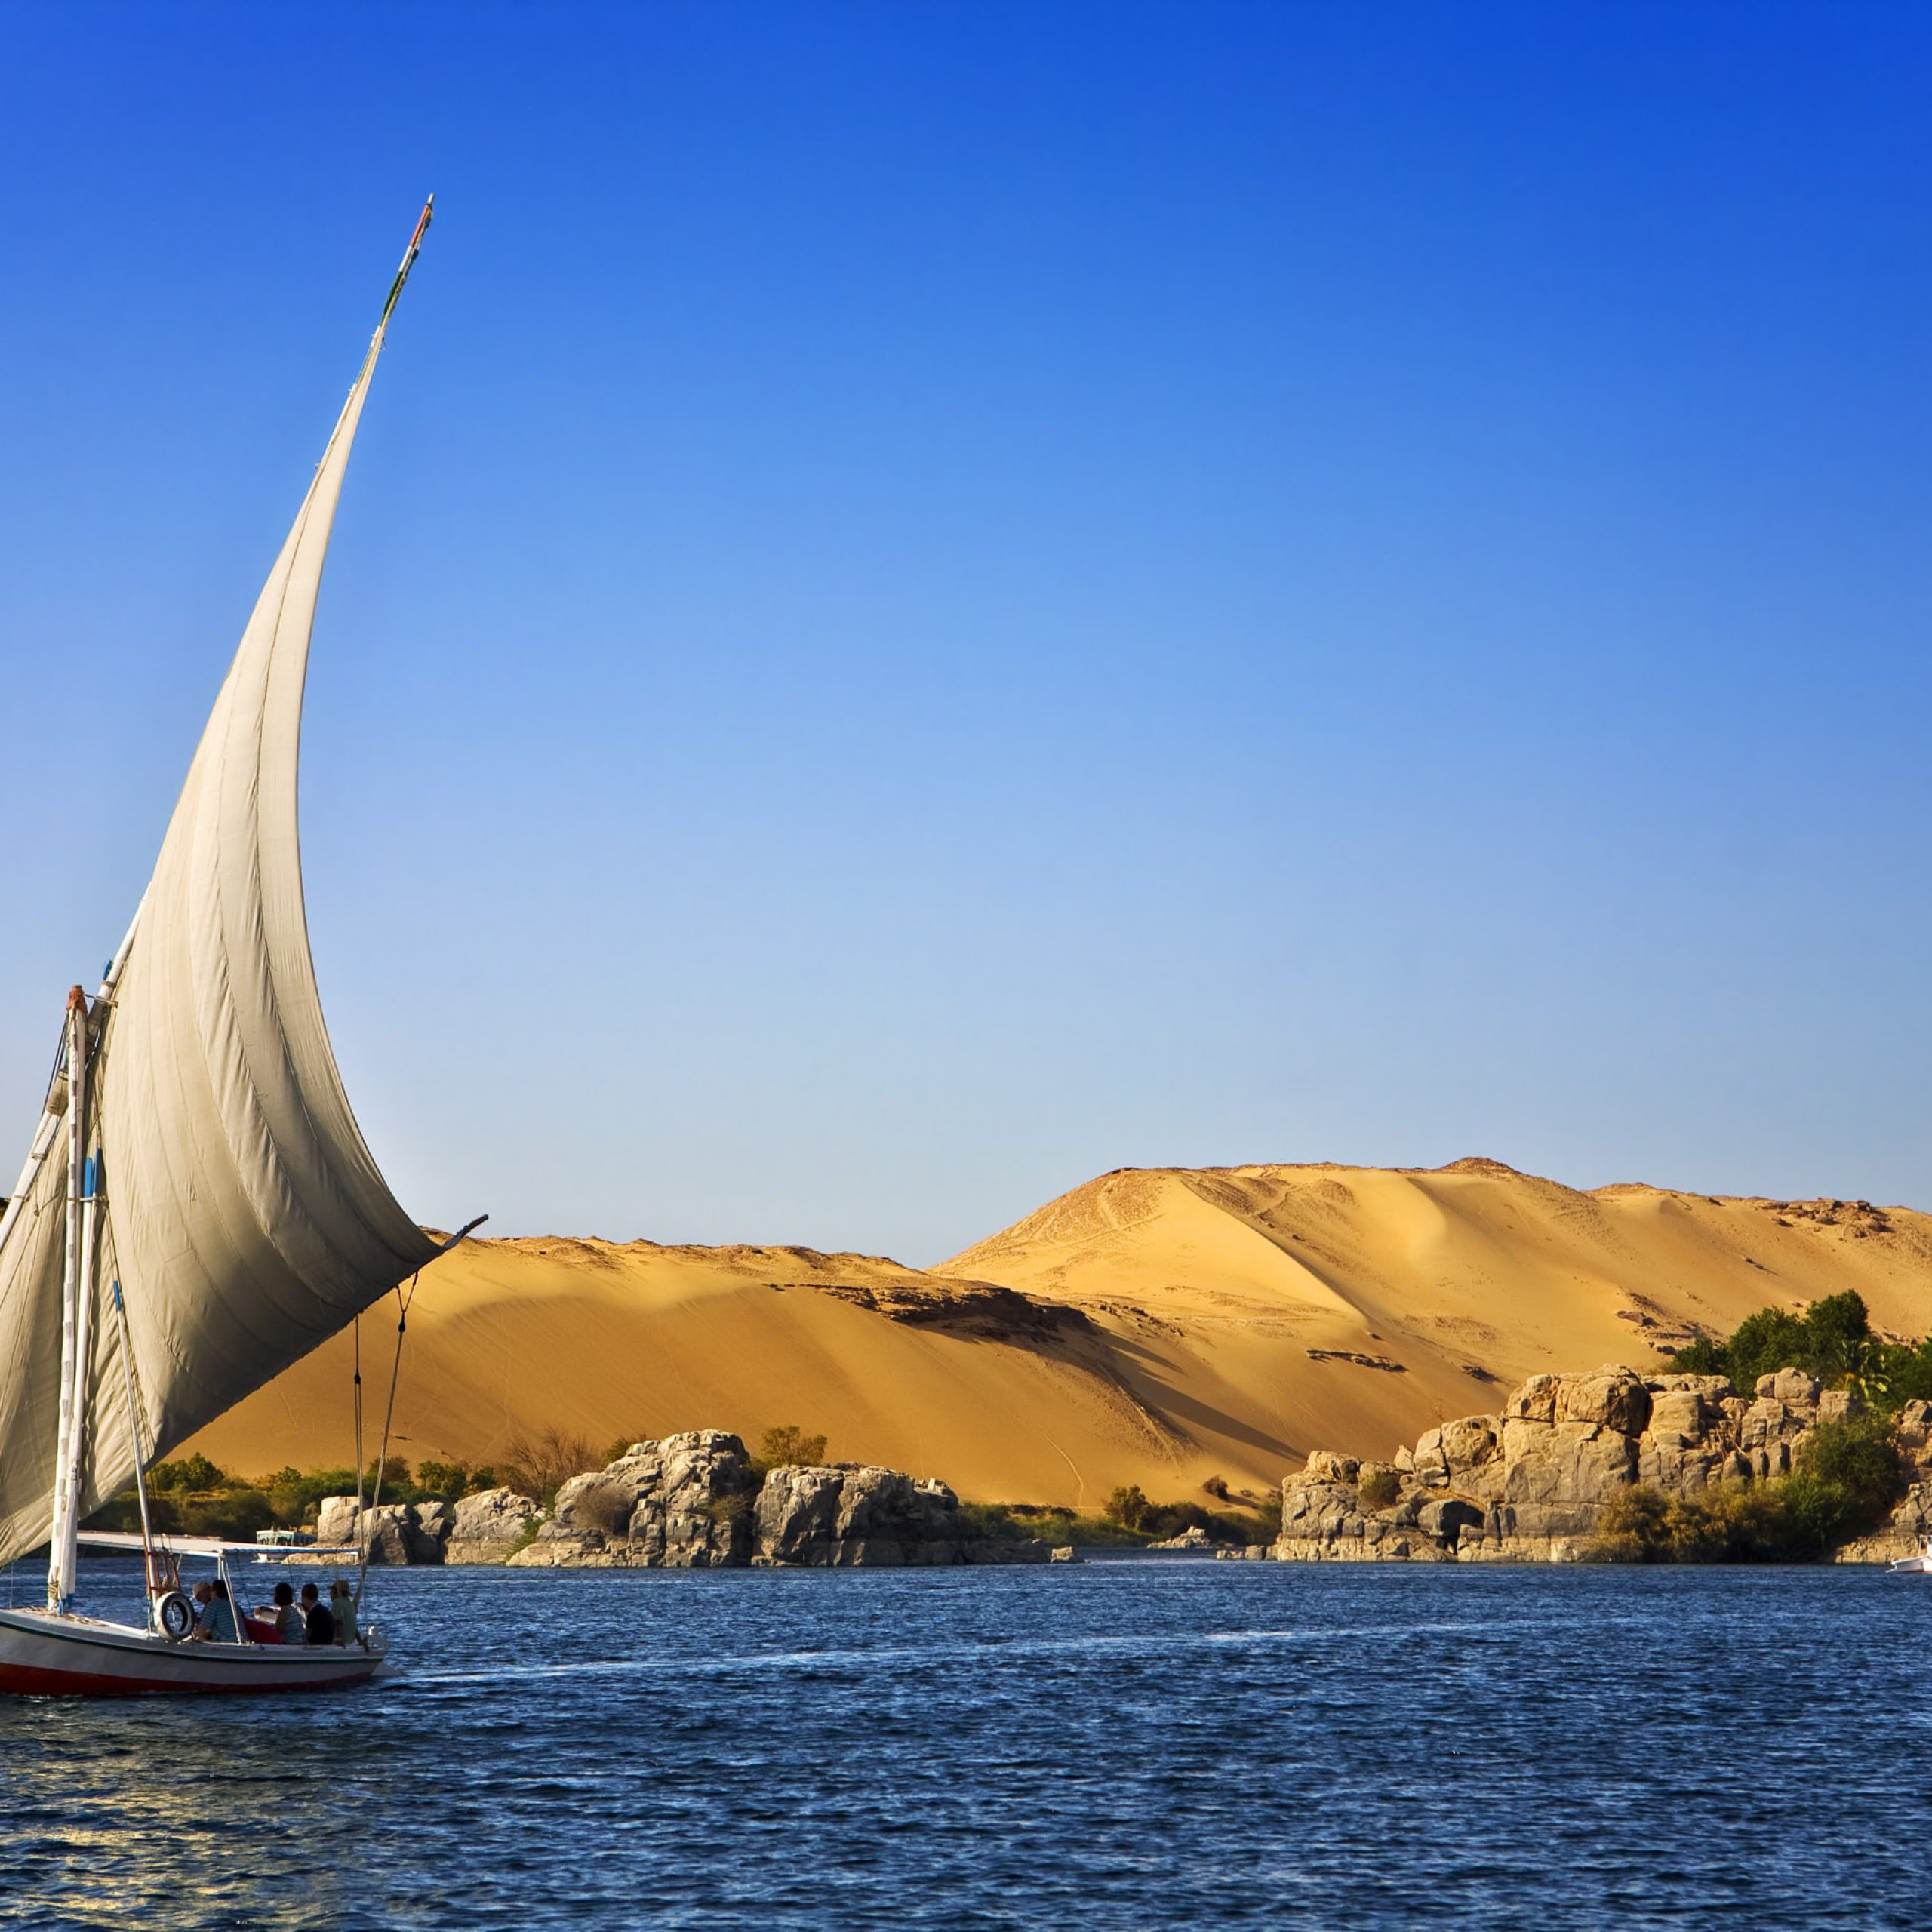 Day 03: Nile Cruise (Start from Aswan Every: Monday, Wednesday & Friday)